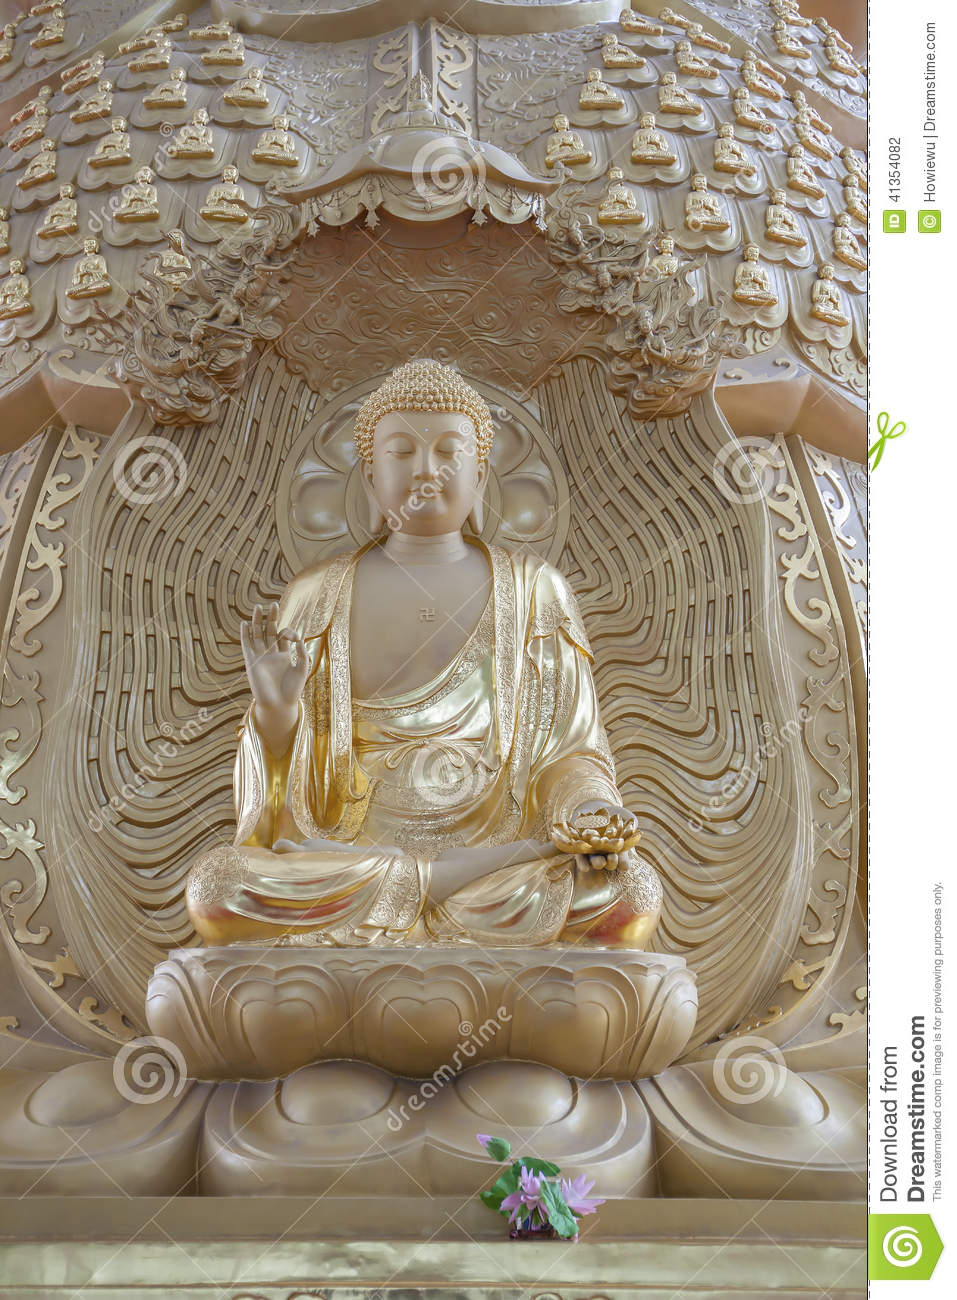 Buddhist statue in a temple in China